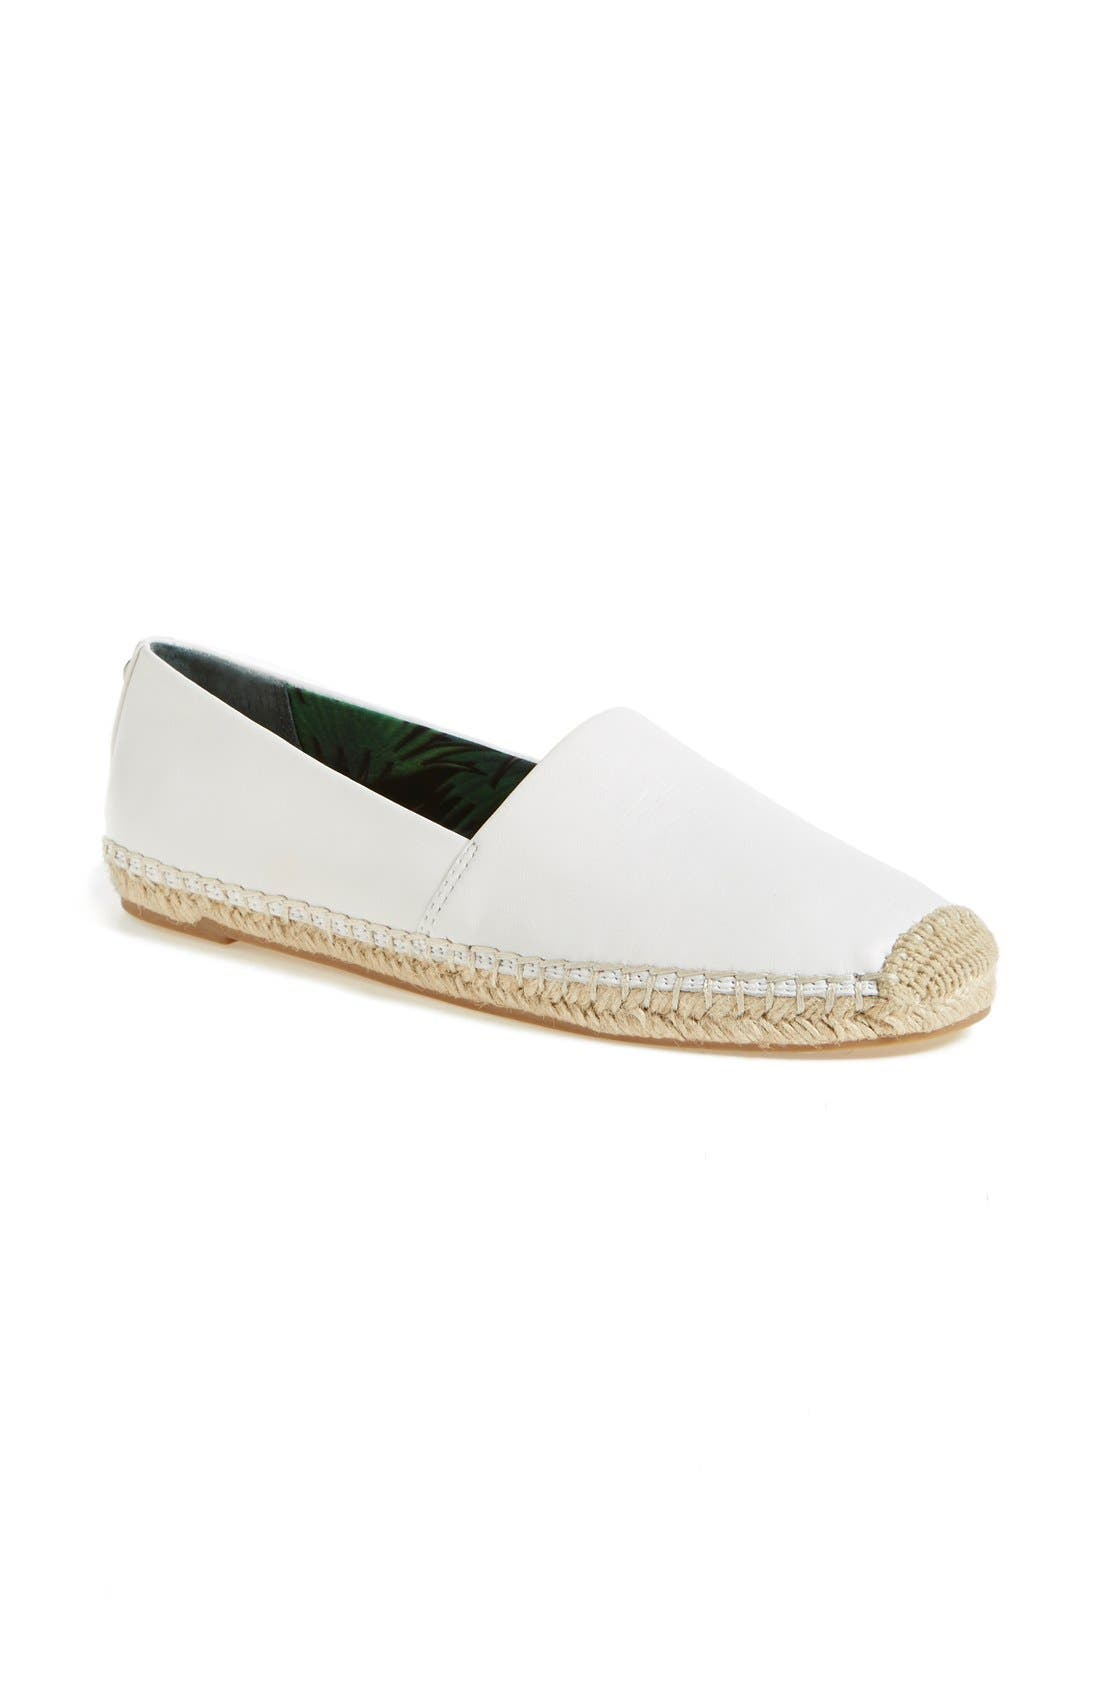 Alternate Image 1 Selected - Sam Edelman 'Lynn' Espadrille Flat